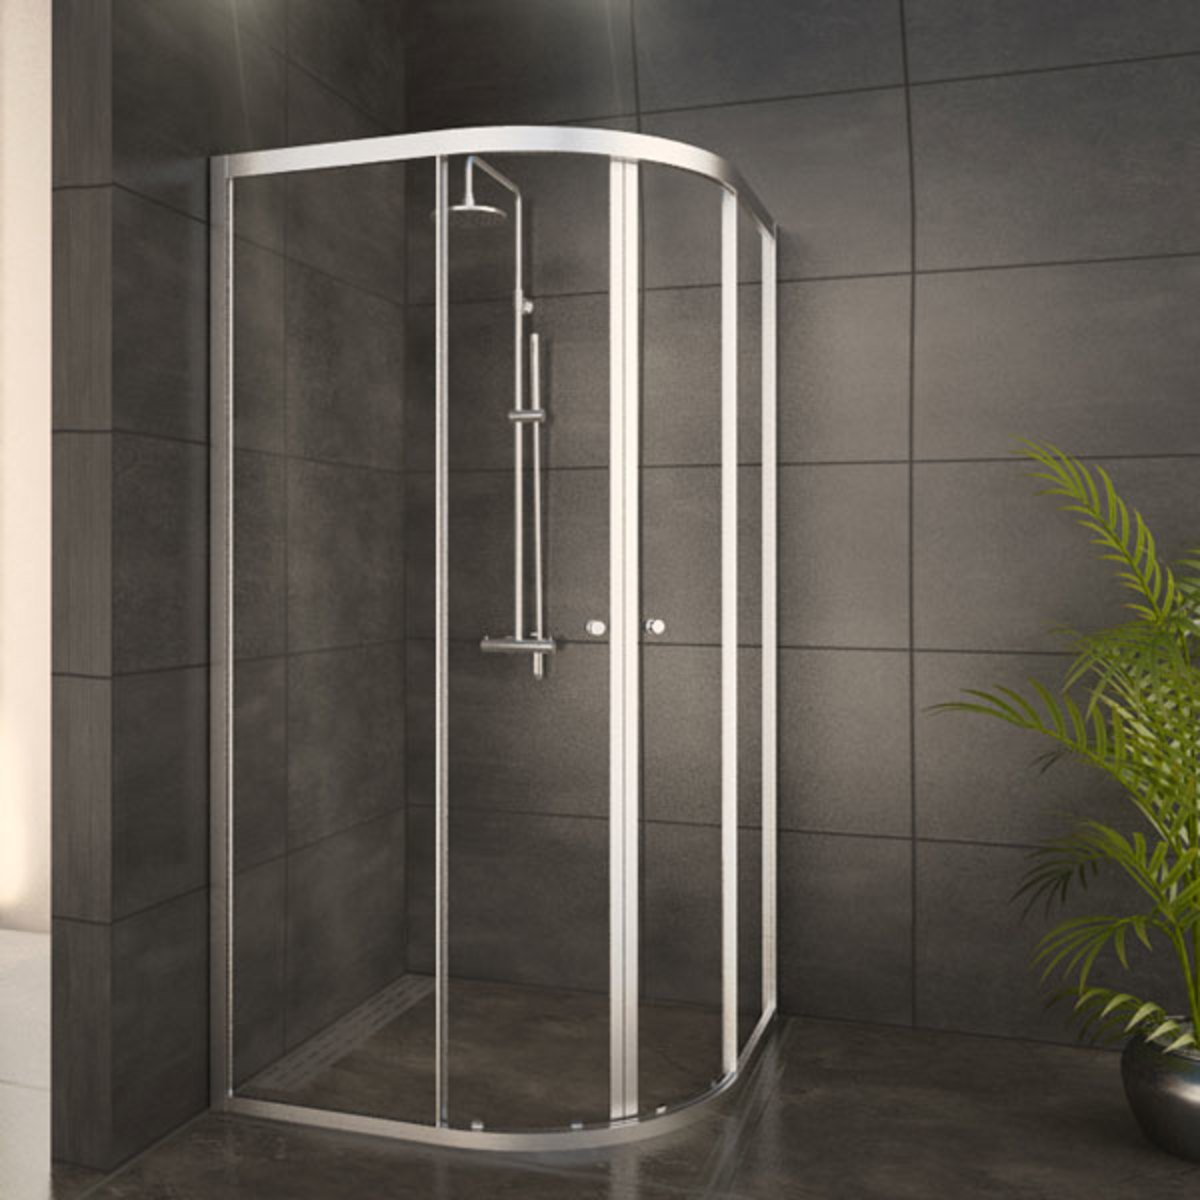 adema glass cabine de douche quart de rond 2 portes coulissantes 100x100x185 profil chrome et. Black Bedroom Furniture Sets. Home Design Ideas